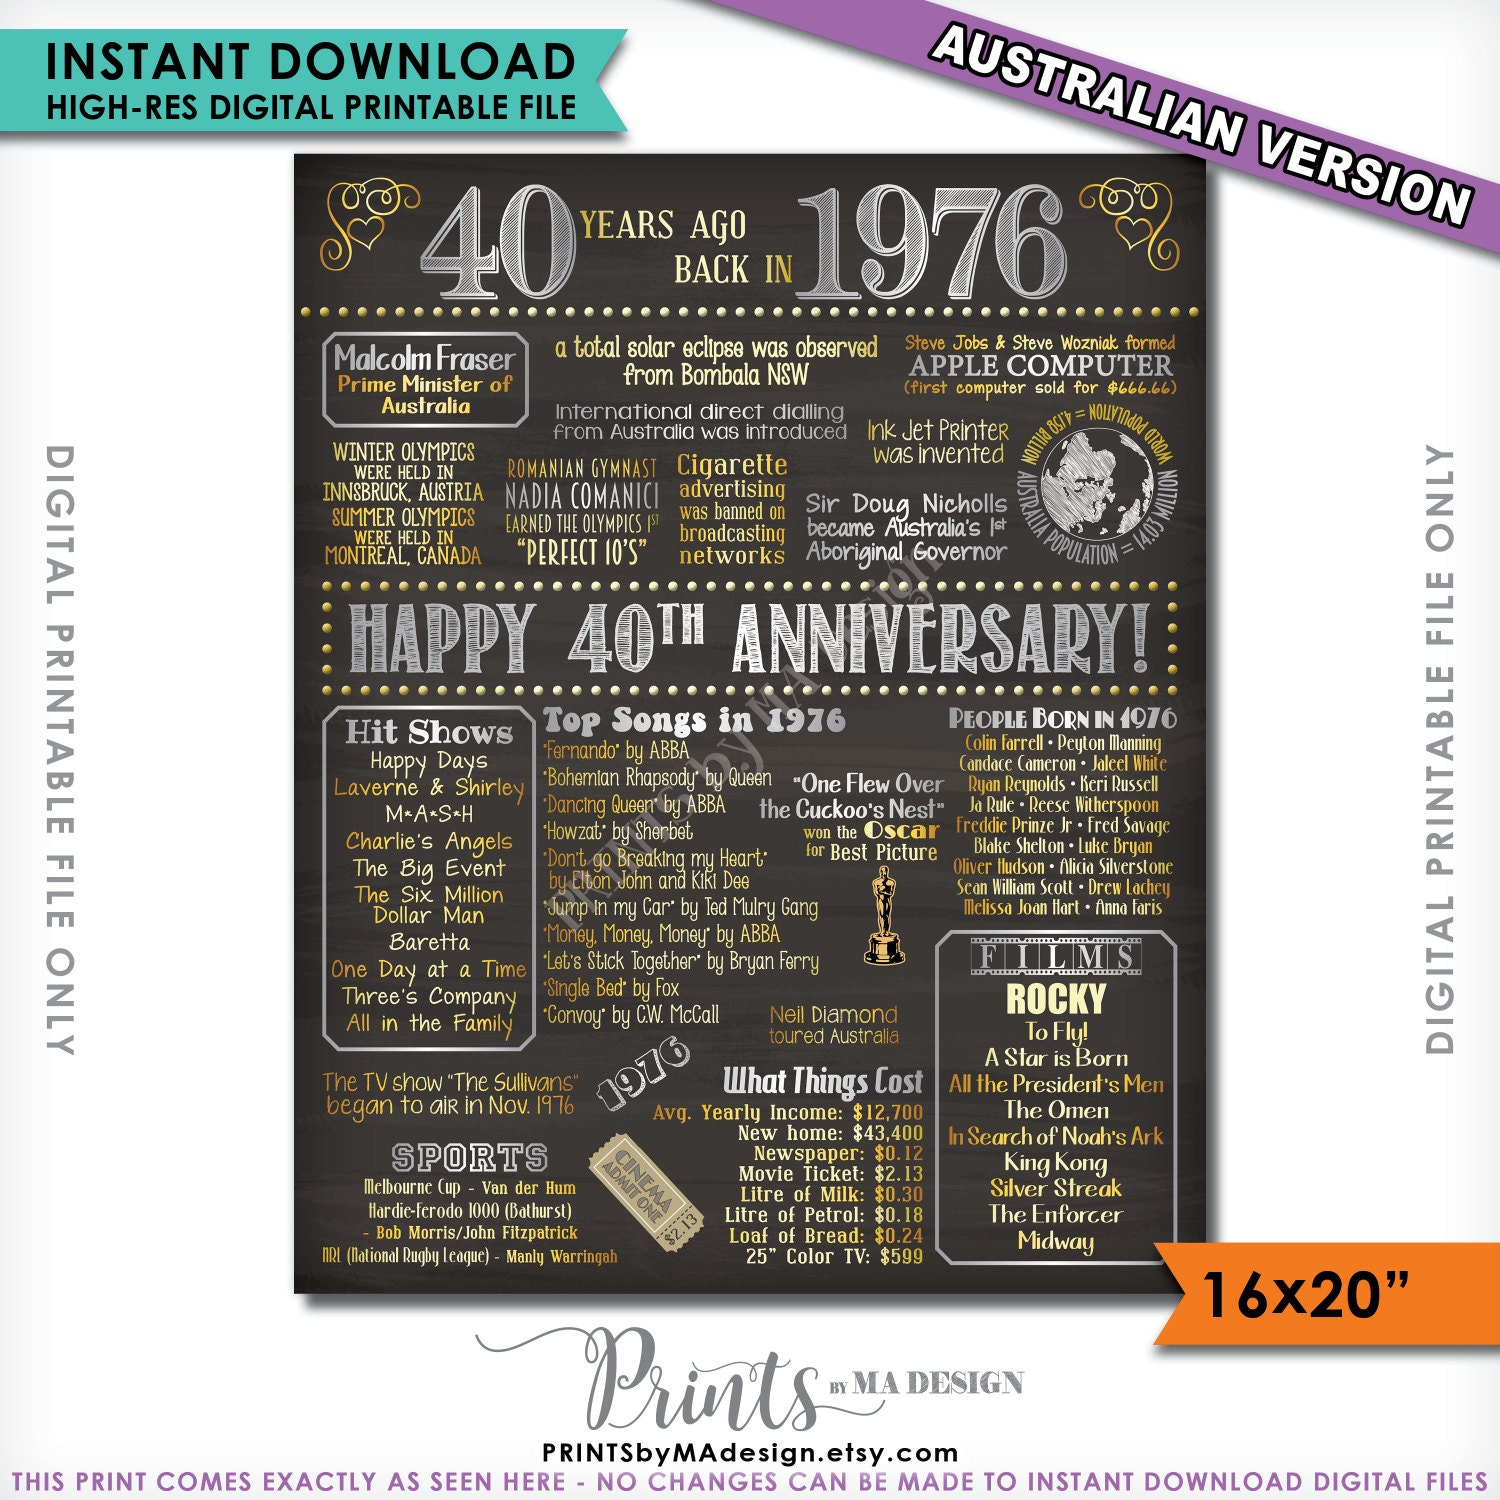 Australian Wedding Anniversary Gifts By Year: 40th Anniversary Gift 1976 Instant Download Digital